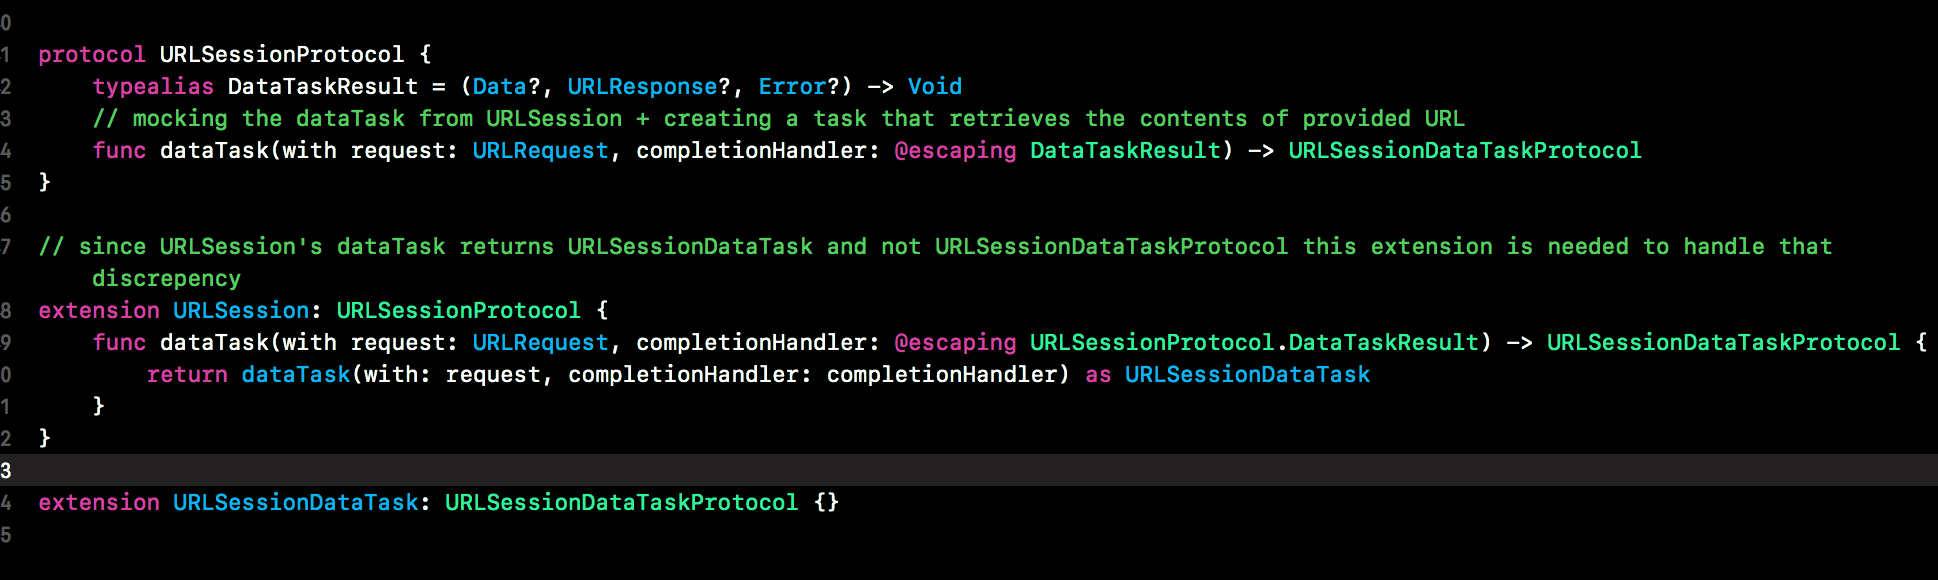 continuation of the code above to show why URLSessionDataTask is able to return URLSessionDataTaskProtocol